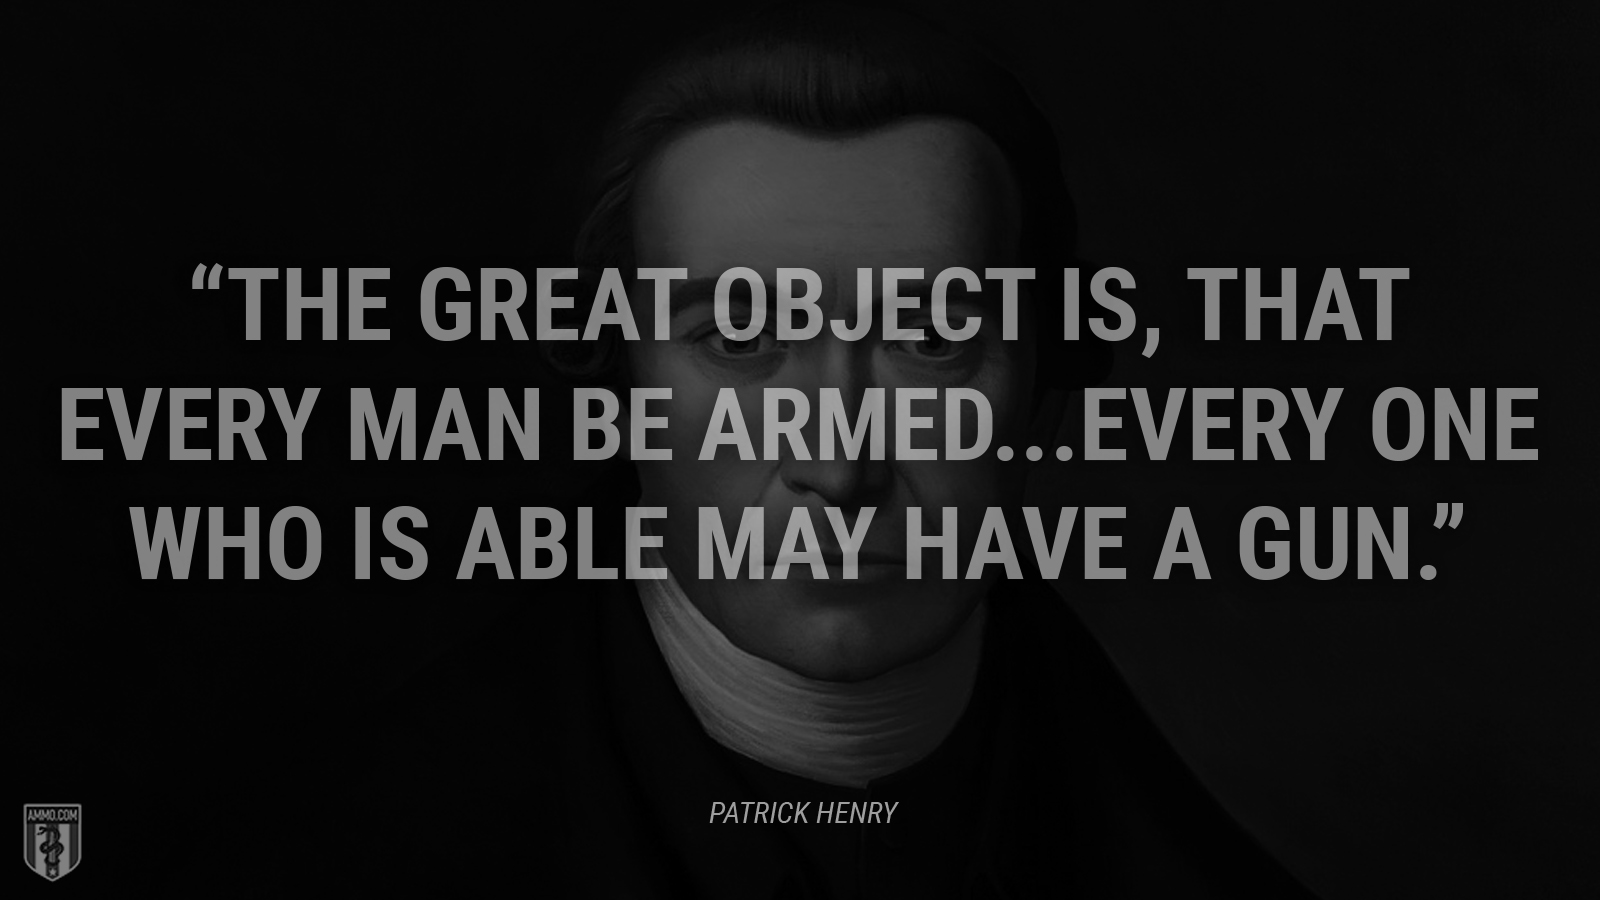 """The great object is, that every man be armed...Every one who is able may have a gun."" - Patrick Henry"